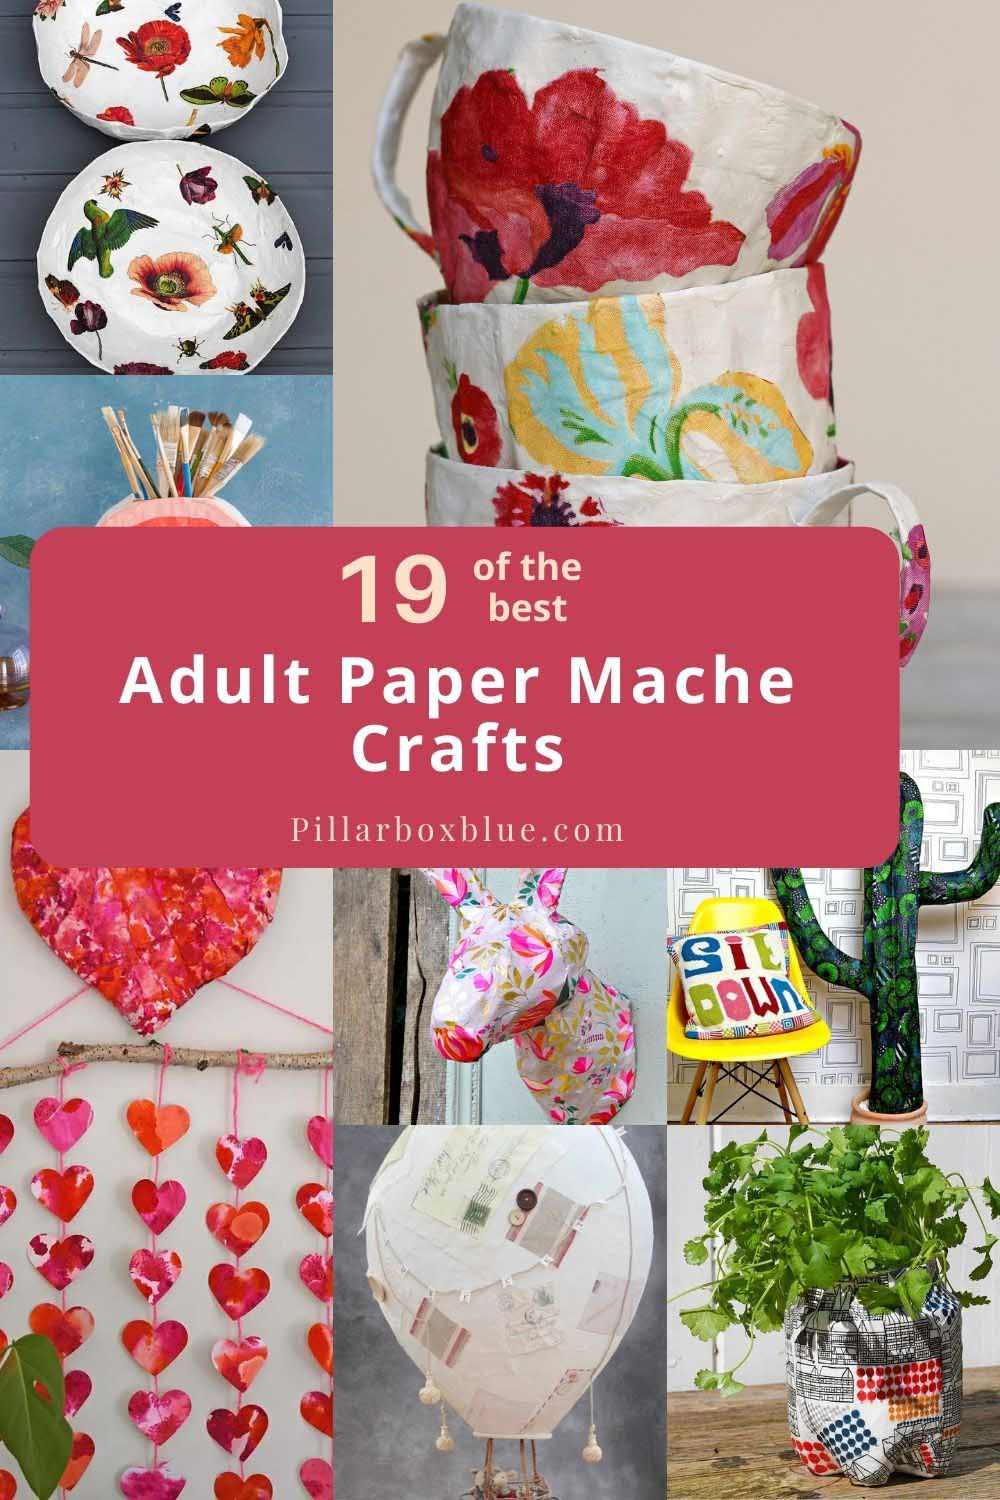 Paper mache craft ideas for adults